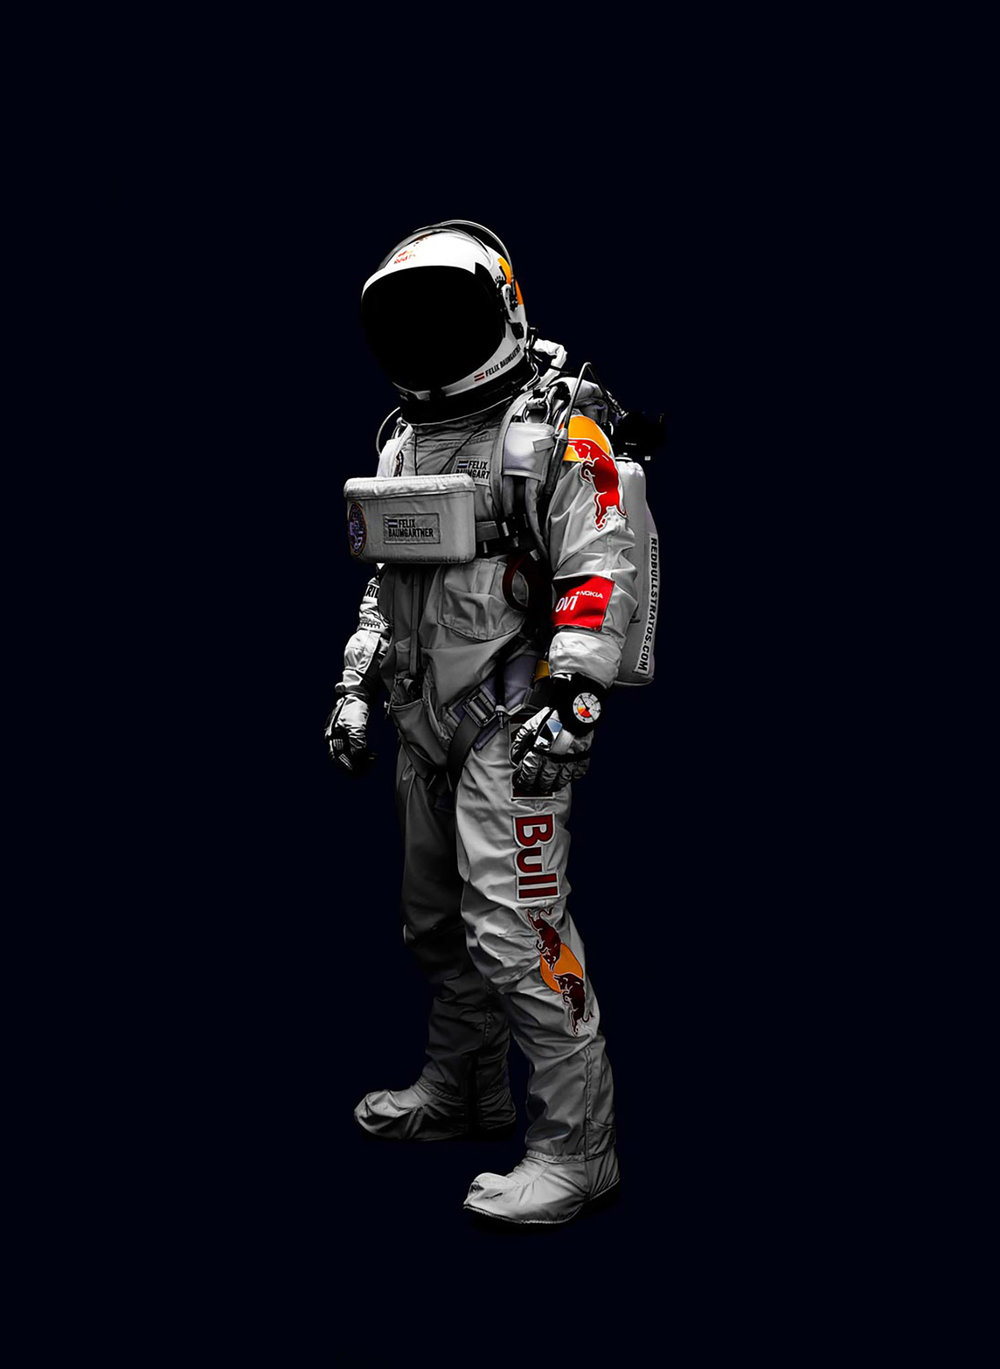 Skydiver Felix Baumgartner in his Red Bull Stratos Space Diving Suit